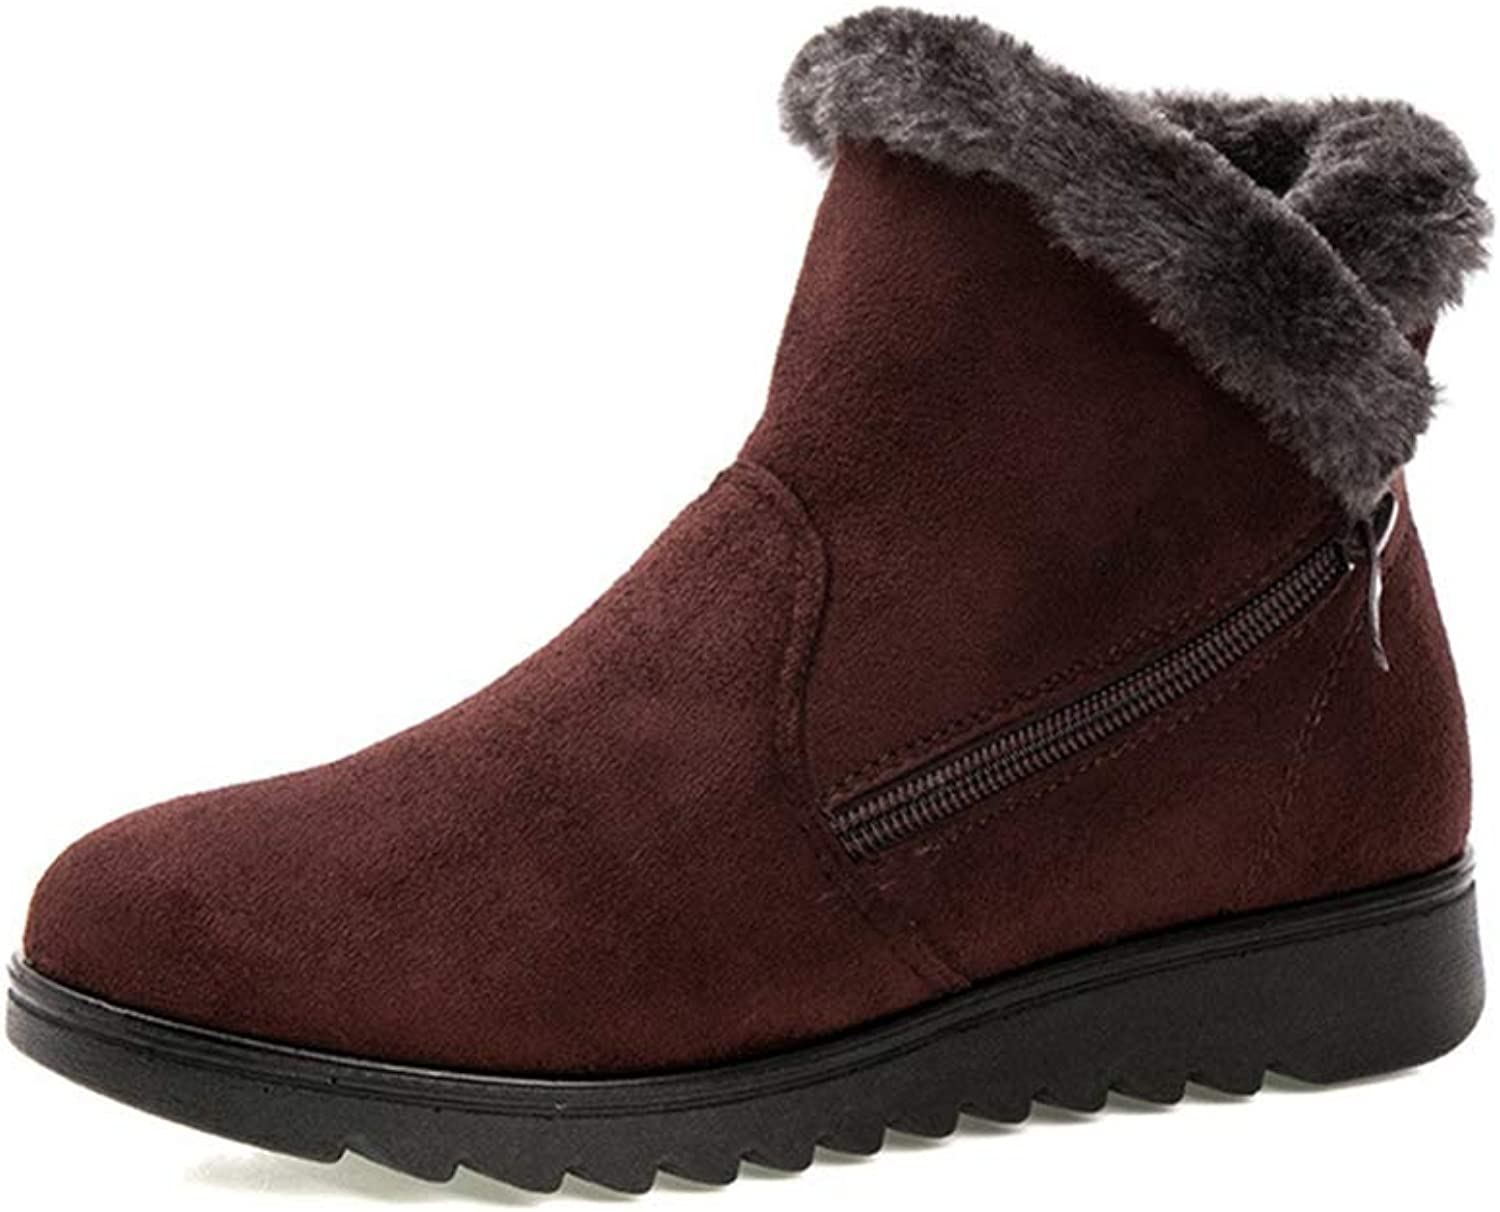 Kyle Walsh Pa Women Winter Boots Warm Fur Female Soft Comfortable Casual Ankle Booties Non-Slip Flats shoes